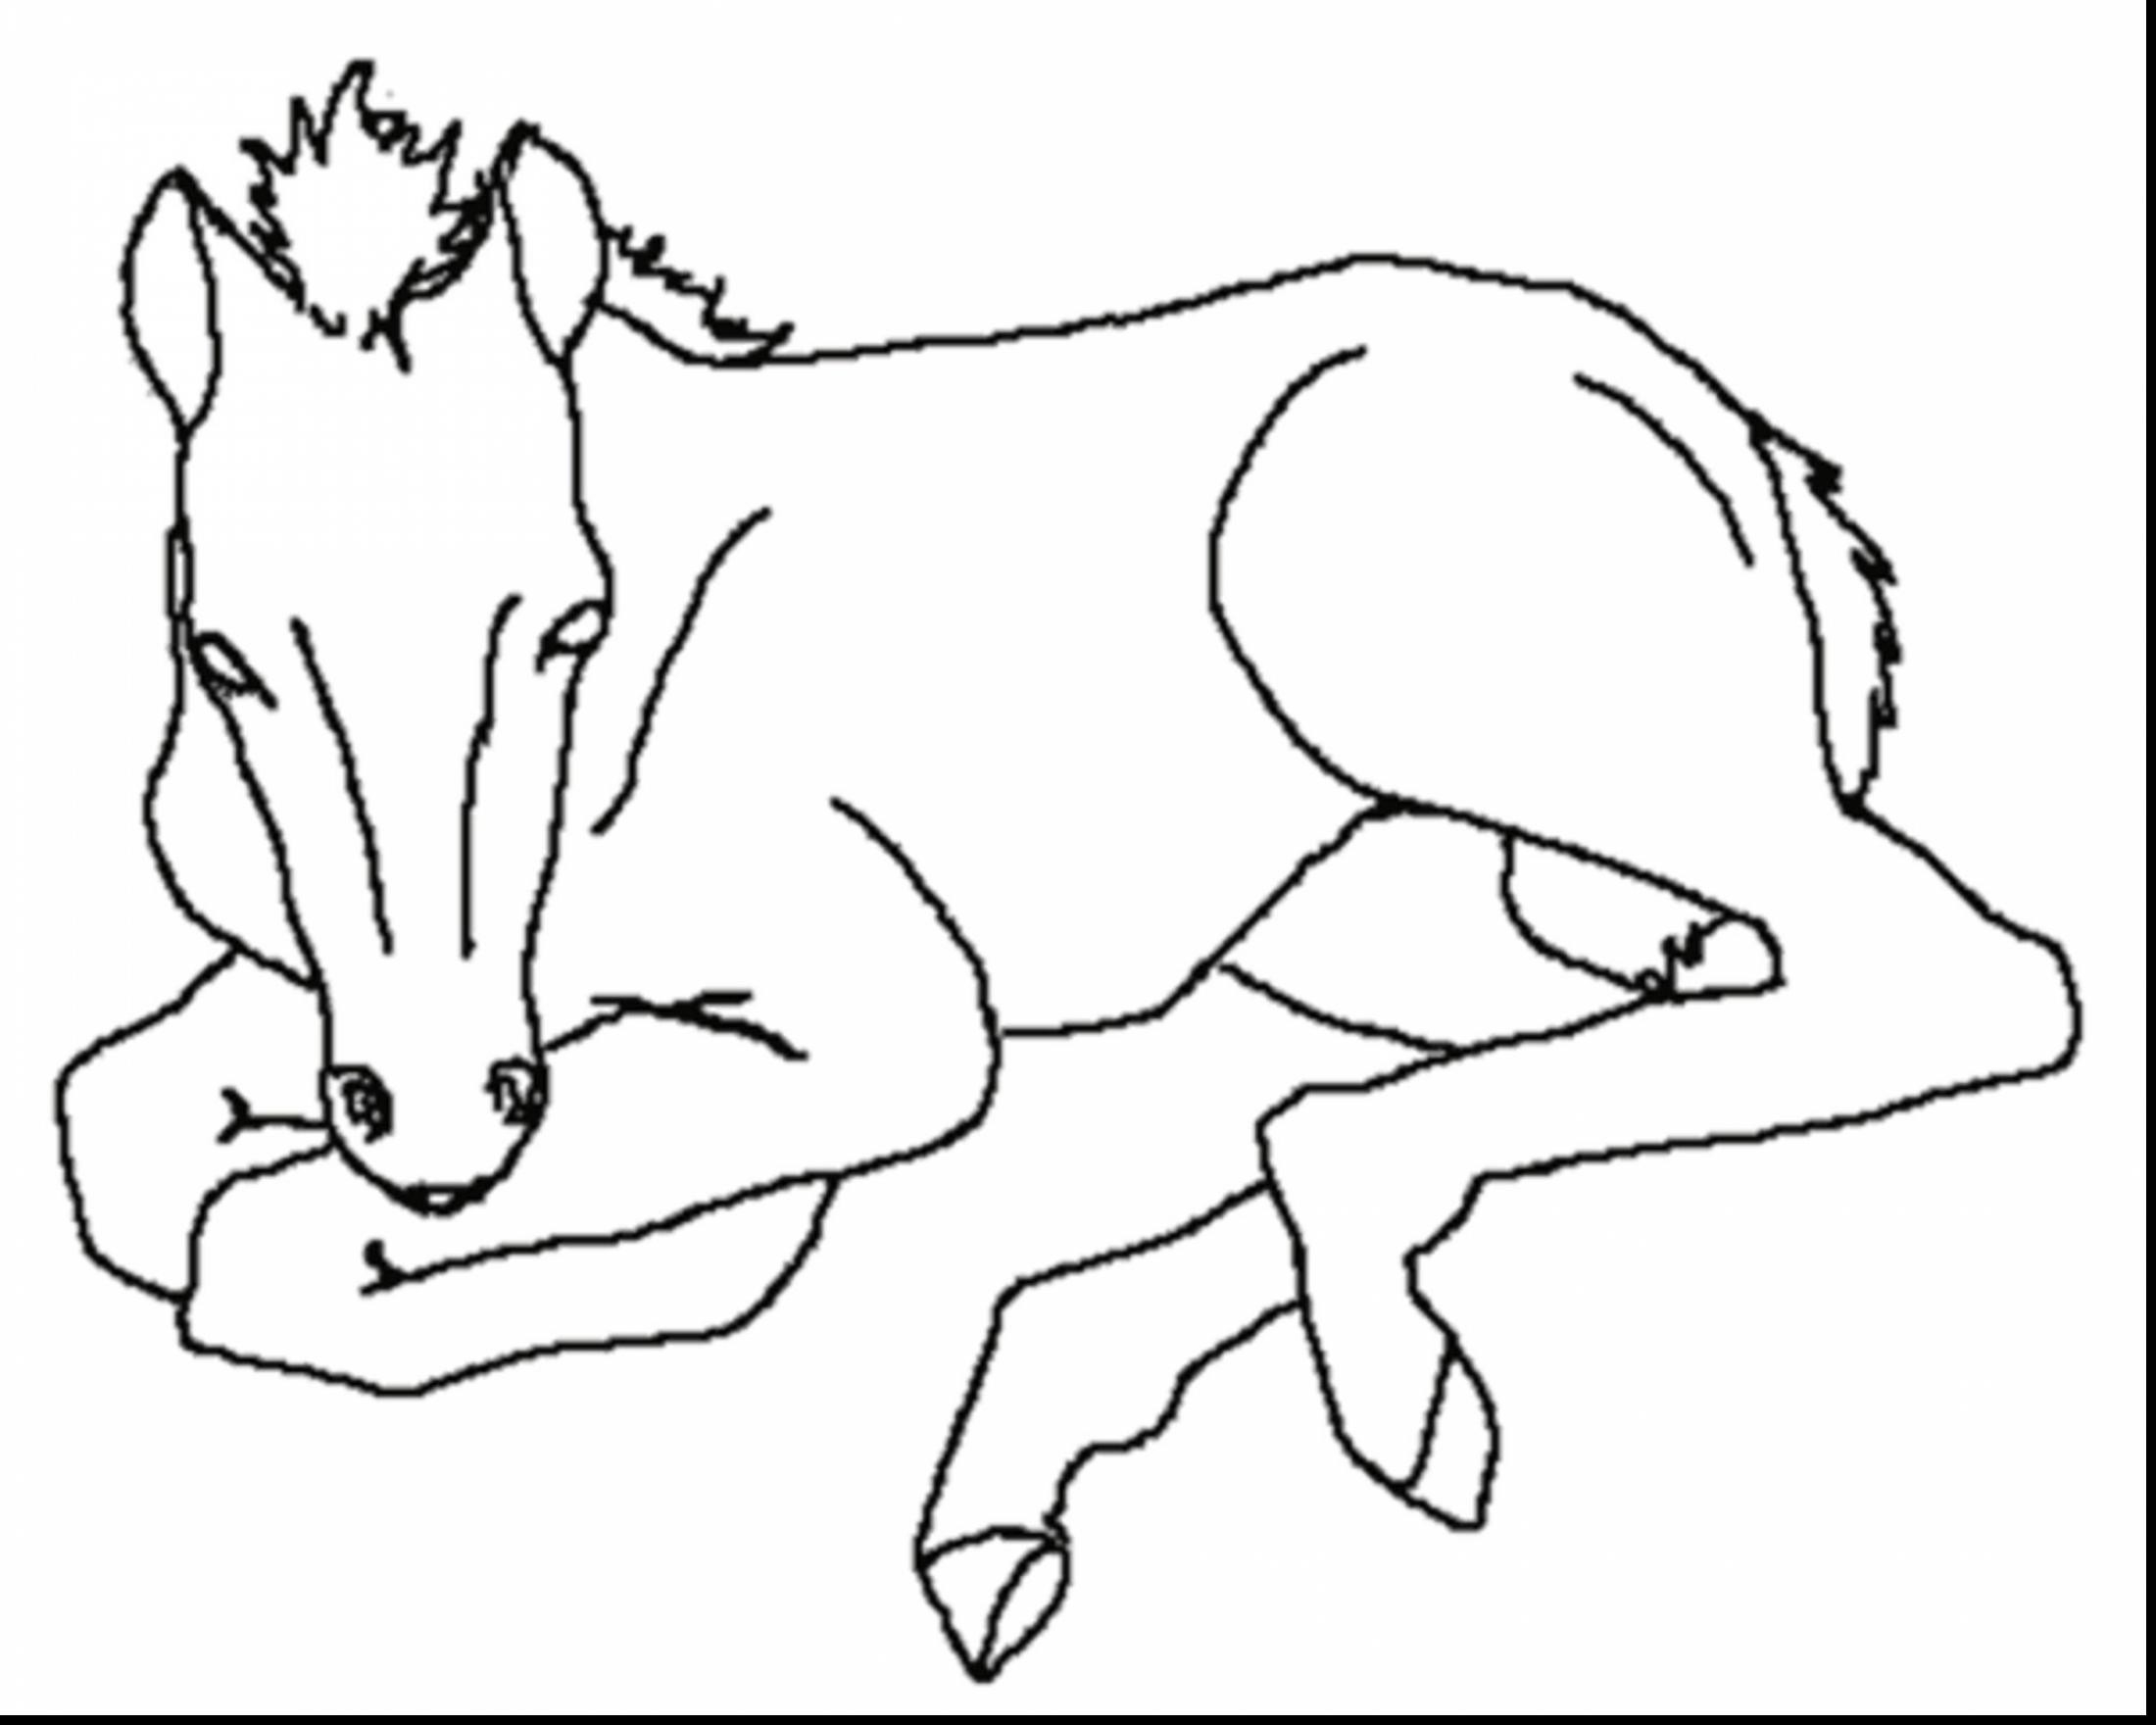 coloring pages of horses to print horse coloring pages preschool and kindergarten of coloring print pages to horses